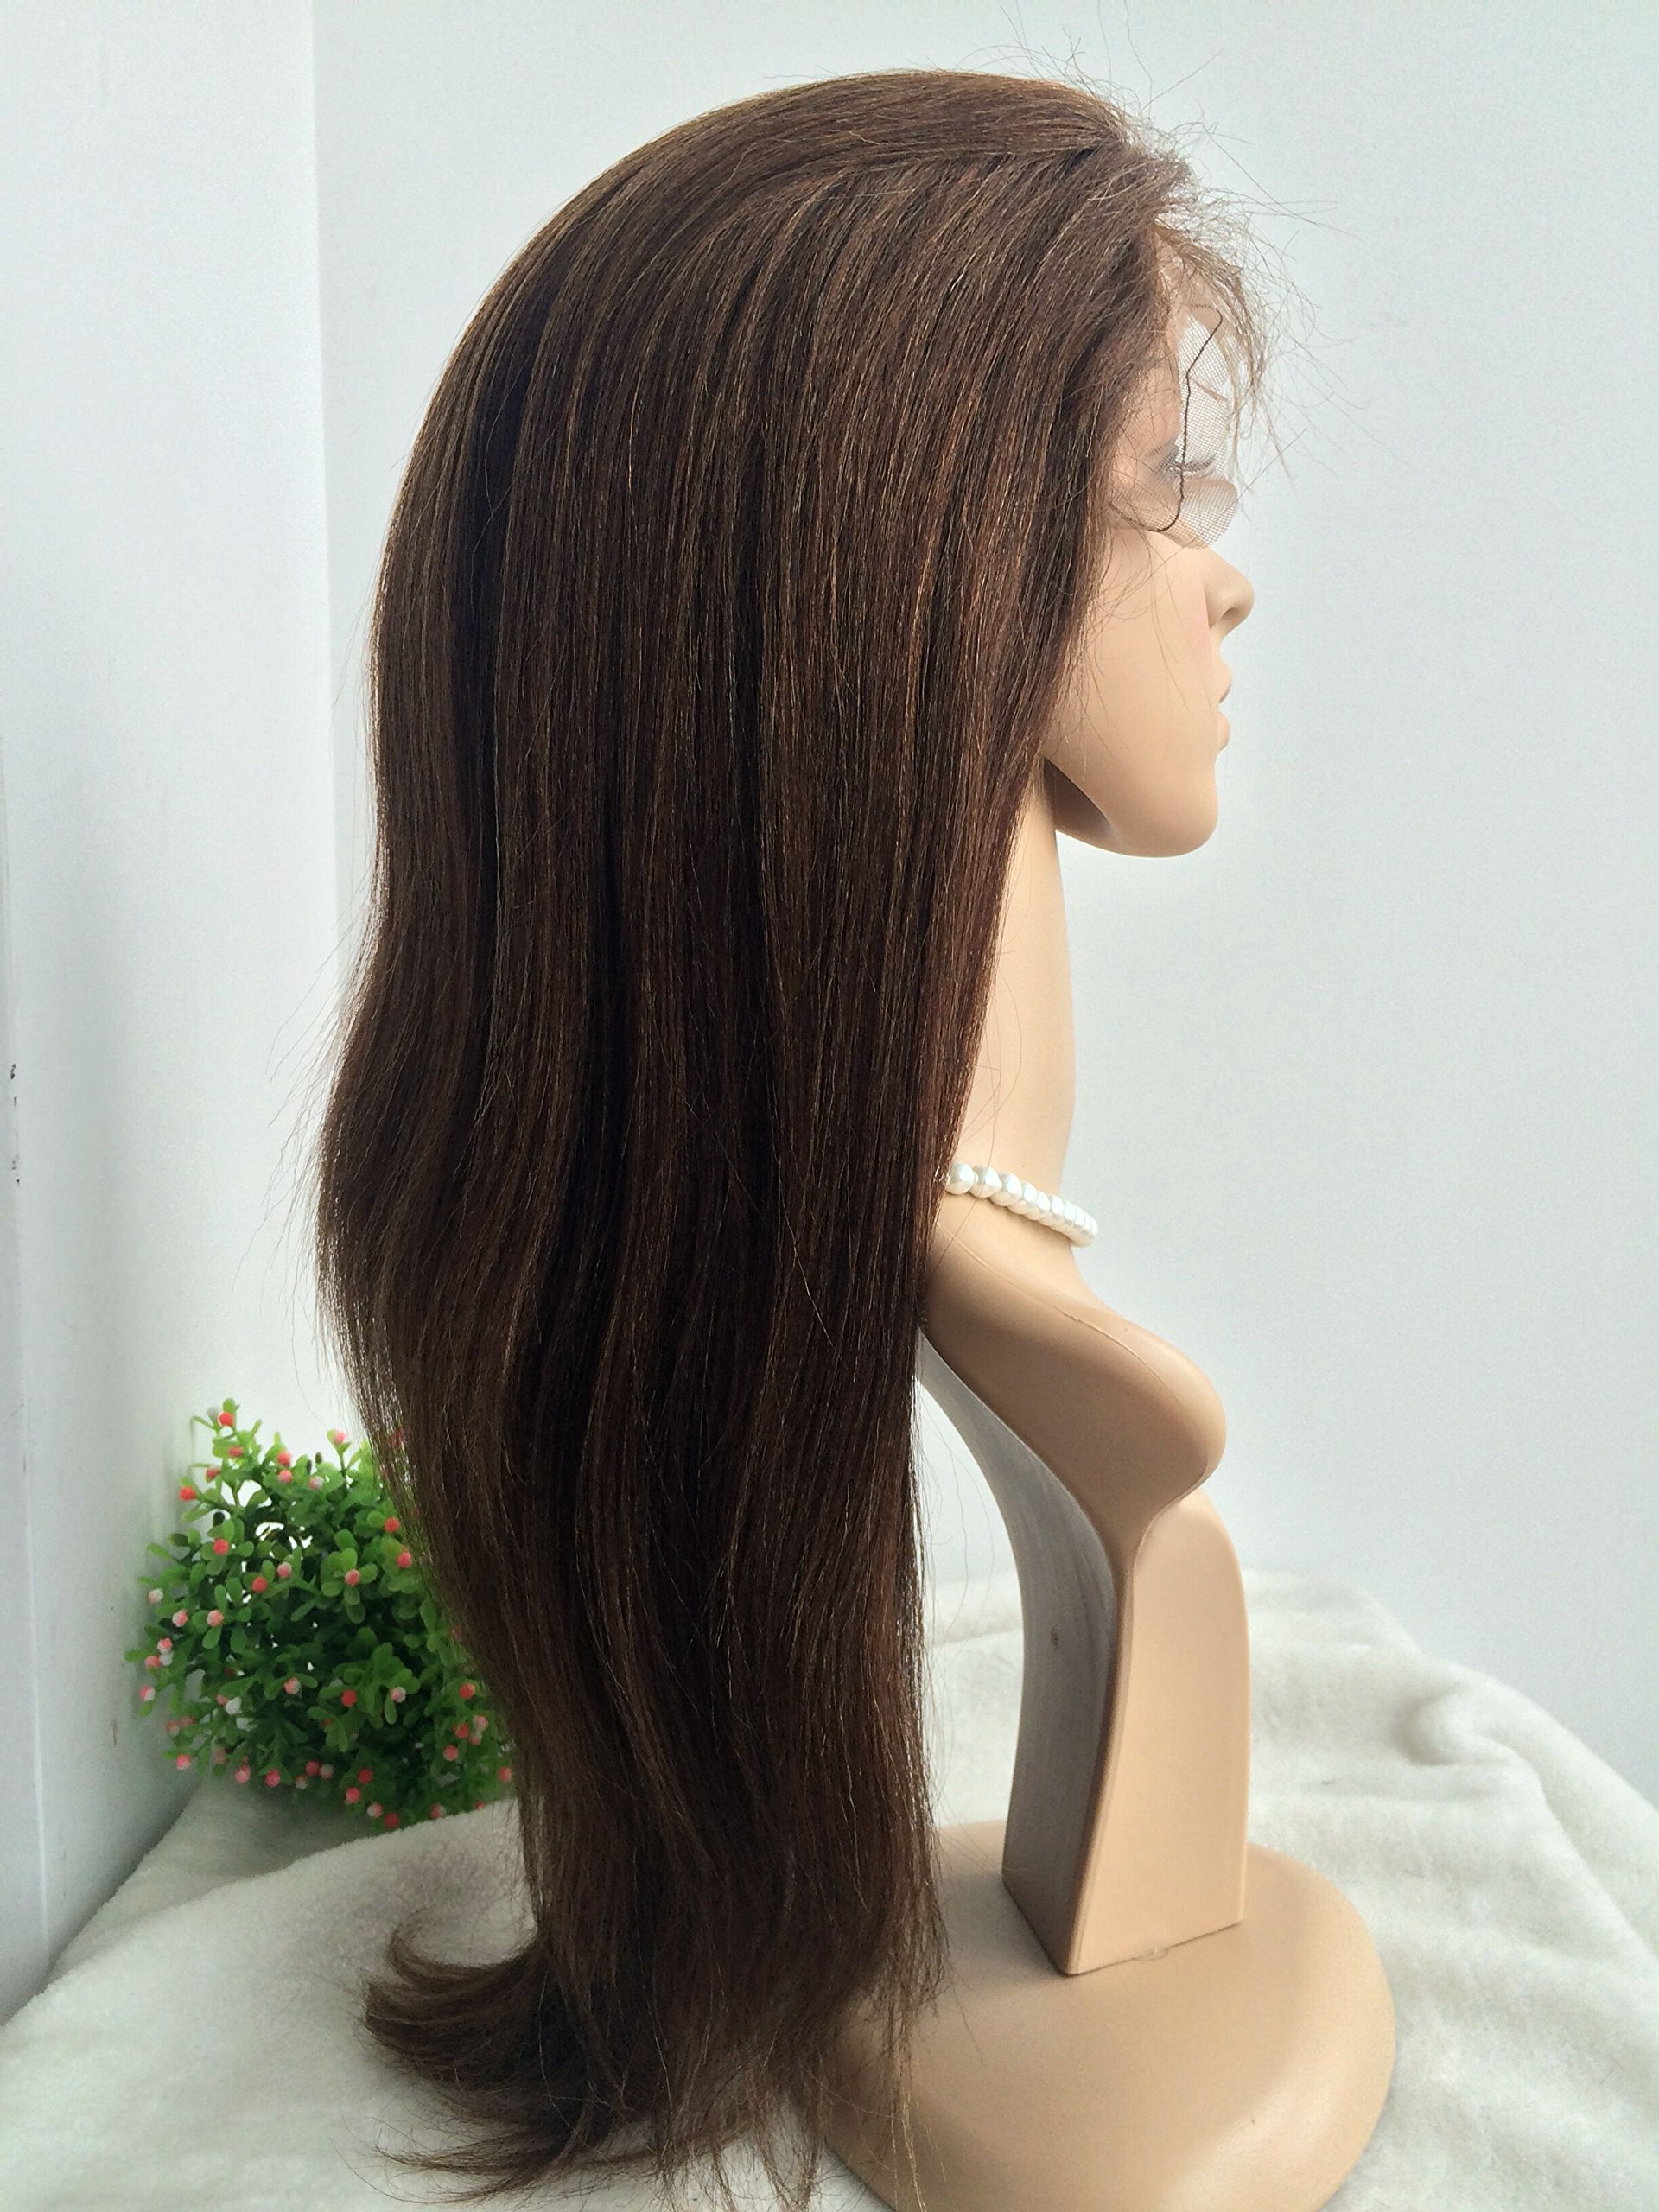 100% HUMAN HAIR,CHINESE VIRGIN HAIR,COARSE YAKI TEXTURE,GLUELESS FULL LACE WIG-BW0056--with bleached knots,baby hair all round